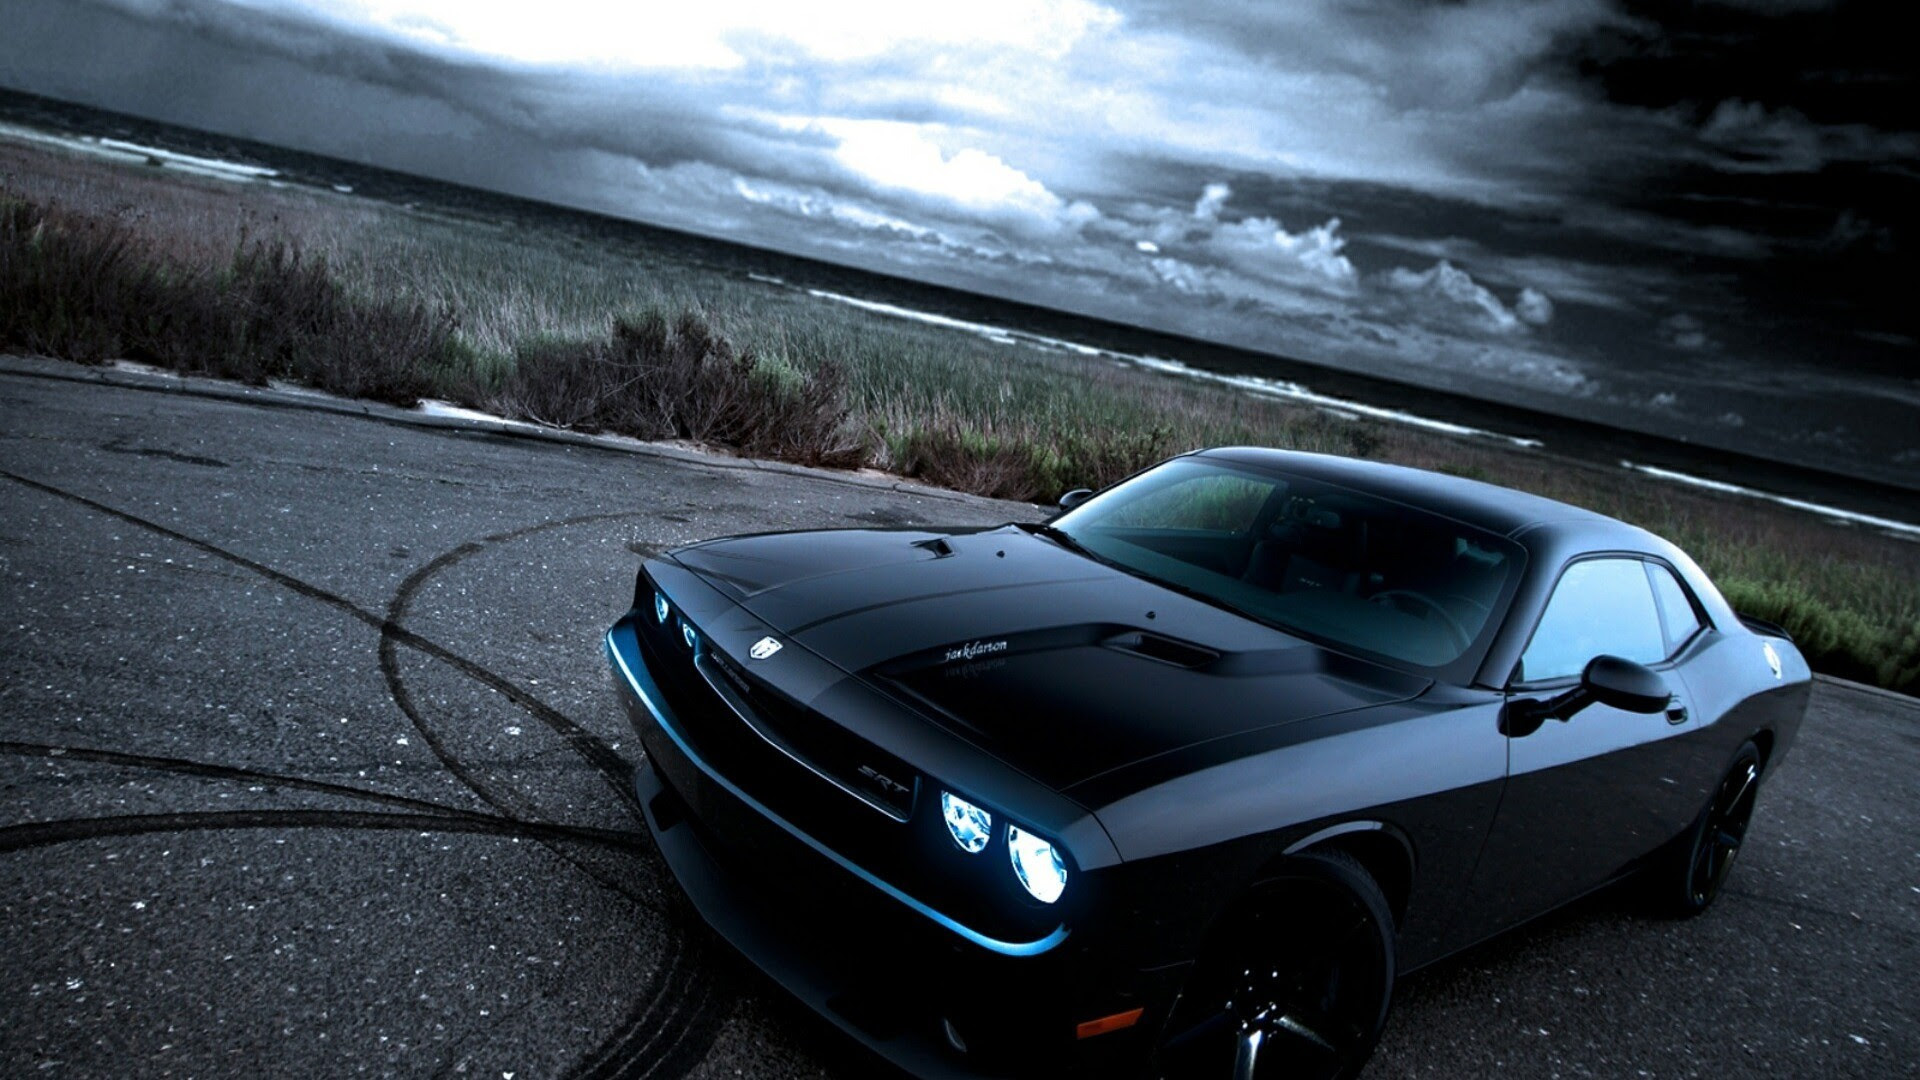 Muscle Cars In 1920x1080 Wallpapers 65 Images